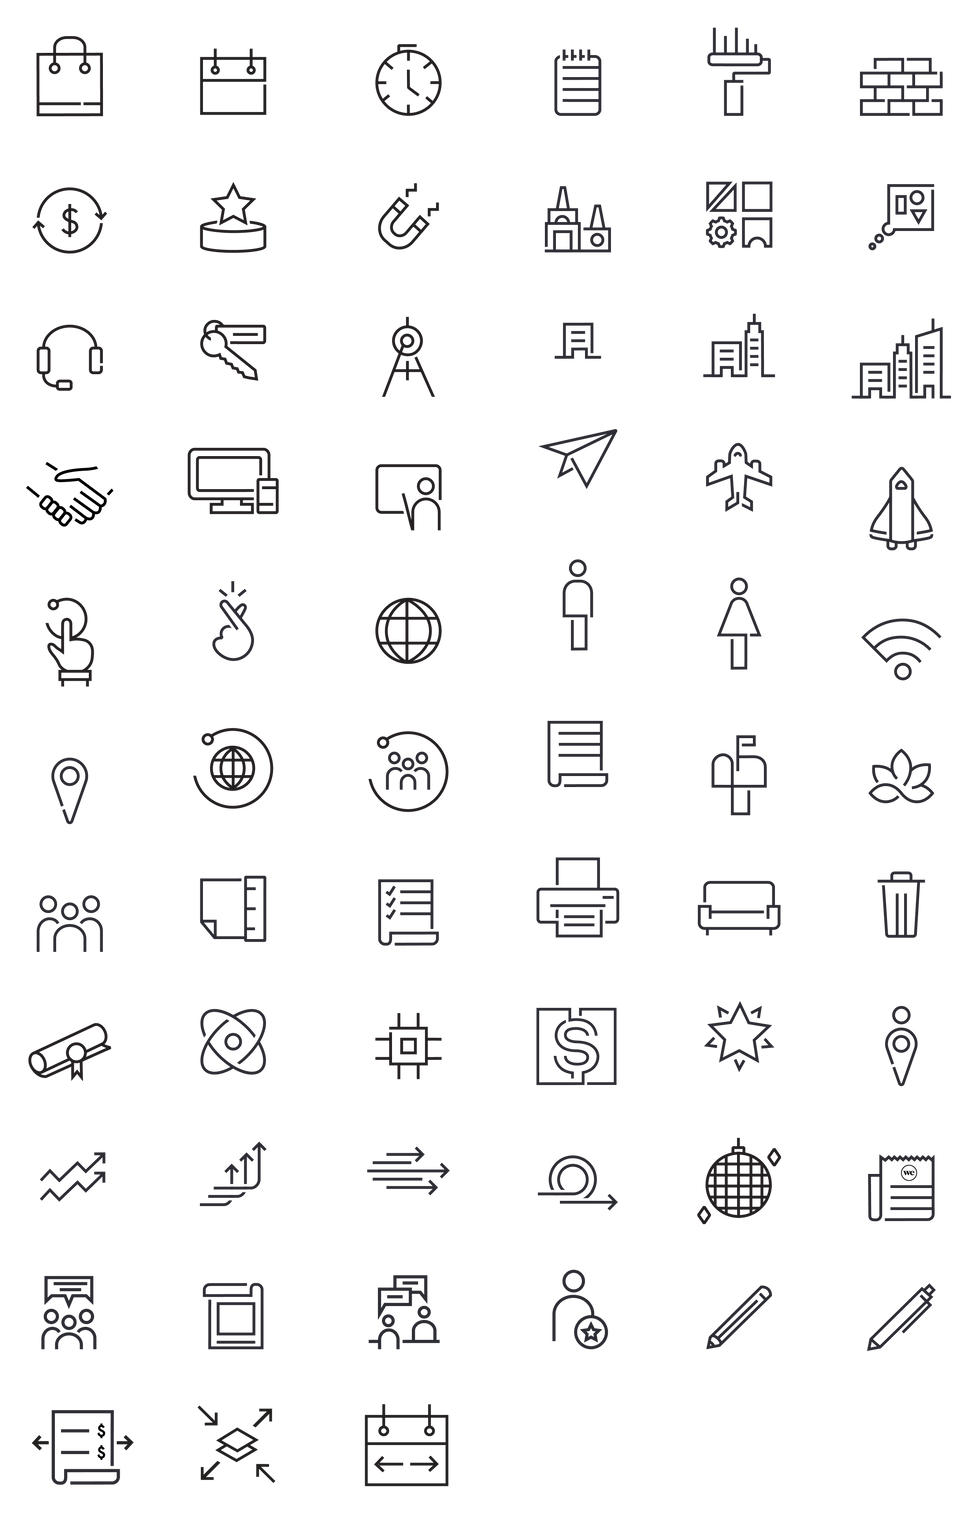 WeWork_Icons_Stroke_Final-78.png